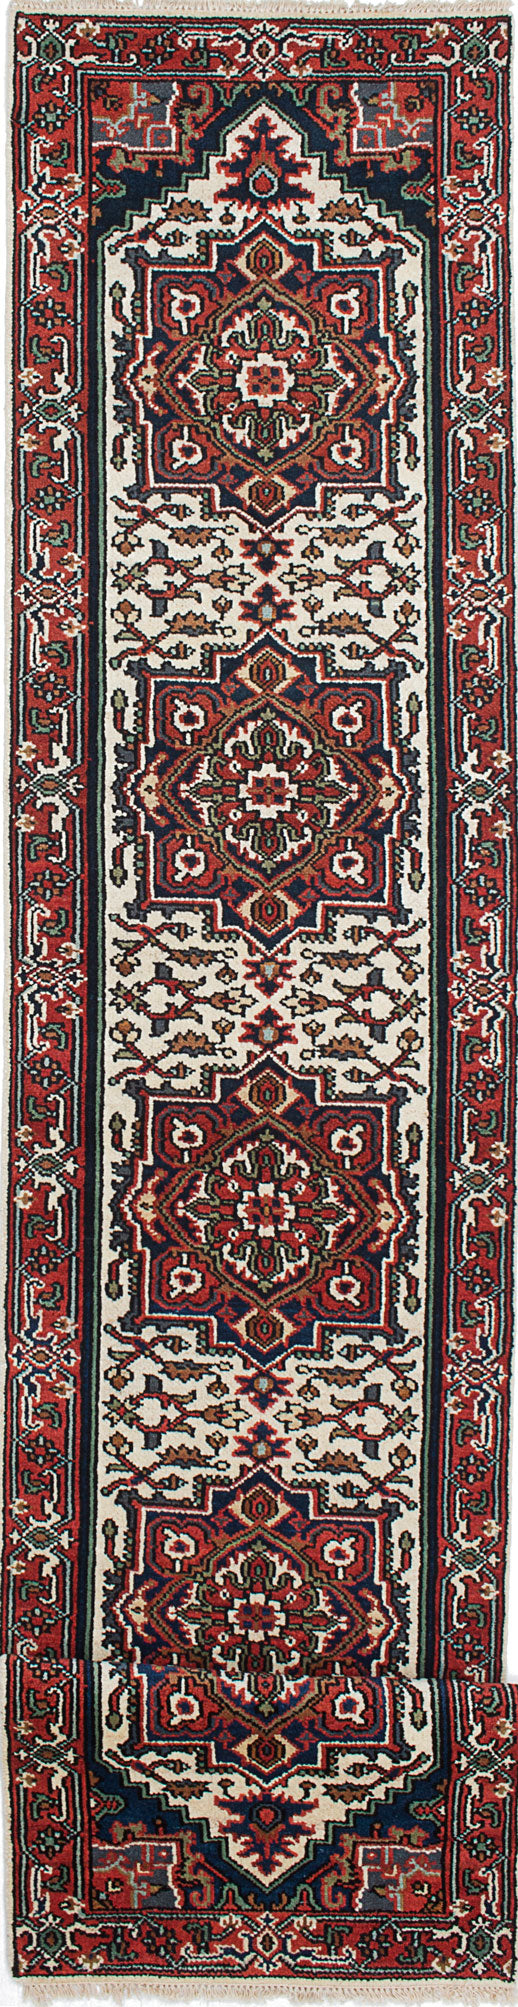 "Hand-knotted Indian Floral  Traditional Serapi-Heritage Runner rug  Dark Burgundy, Navy Blue 2'7 x 19'9"" """